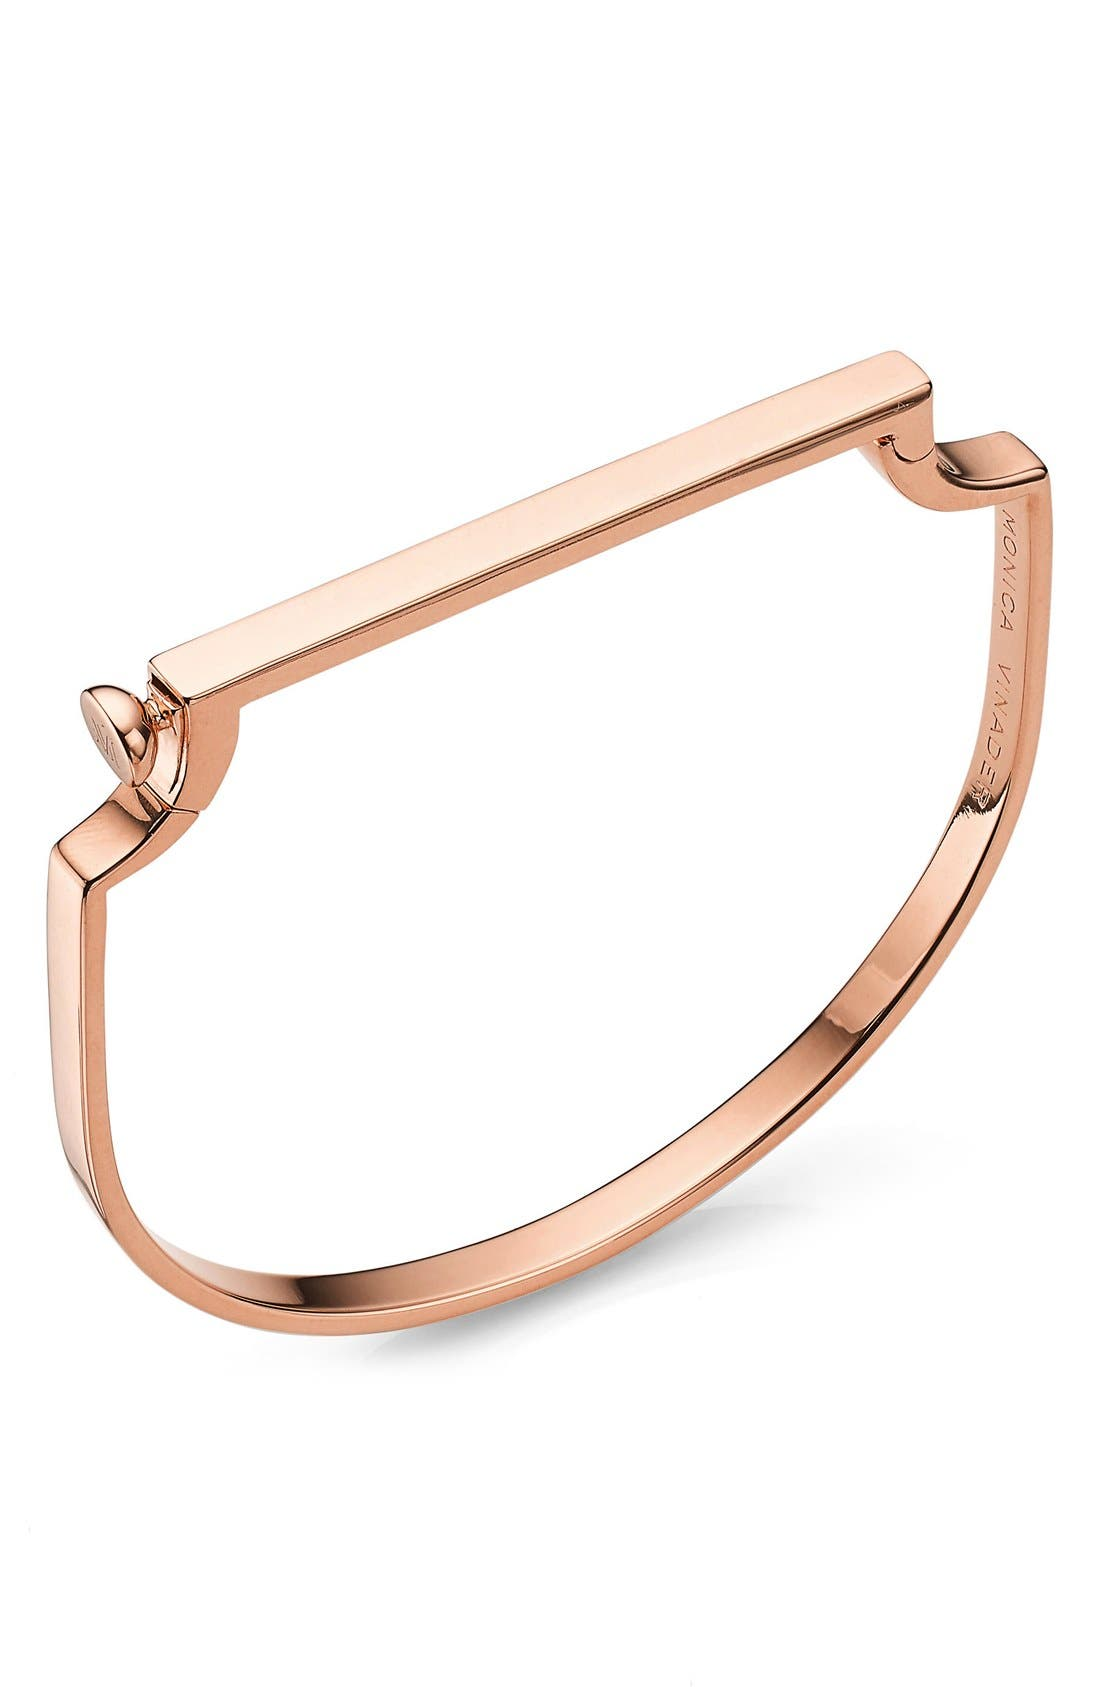 Alternate Image 1 Selected - Monica Vinader Signature Thin Petite Bangle